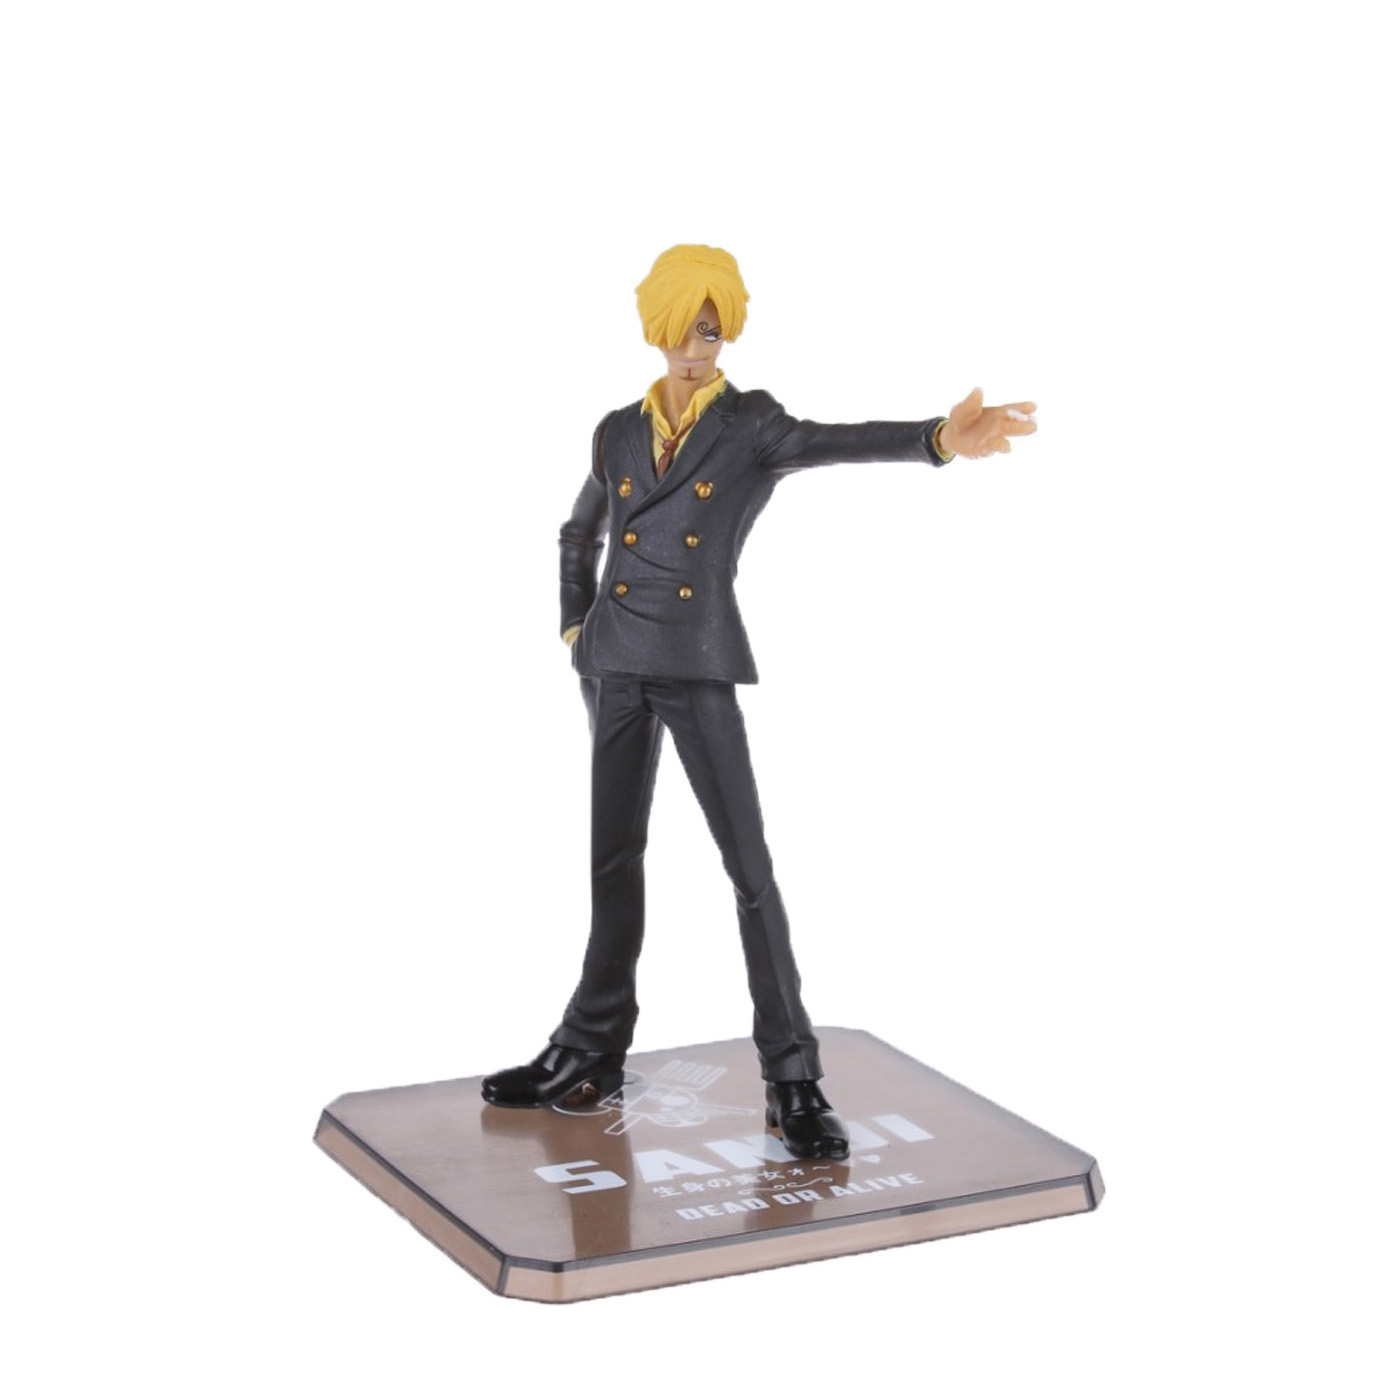 Chanycore Anime ONE PIECE Cartoon Two Years Later New World sanji 14cm Action Figures PVC onepiece toys doll model collection